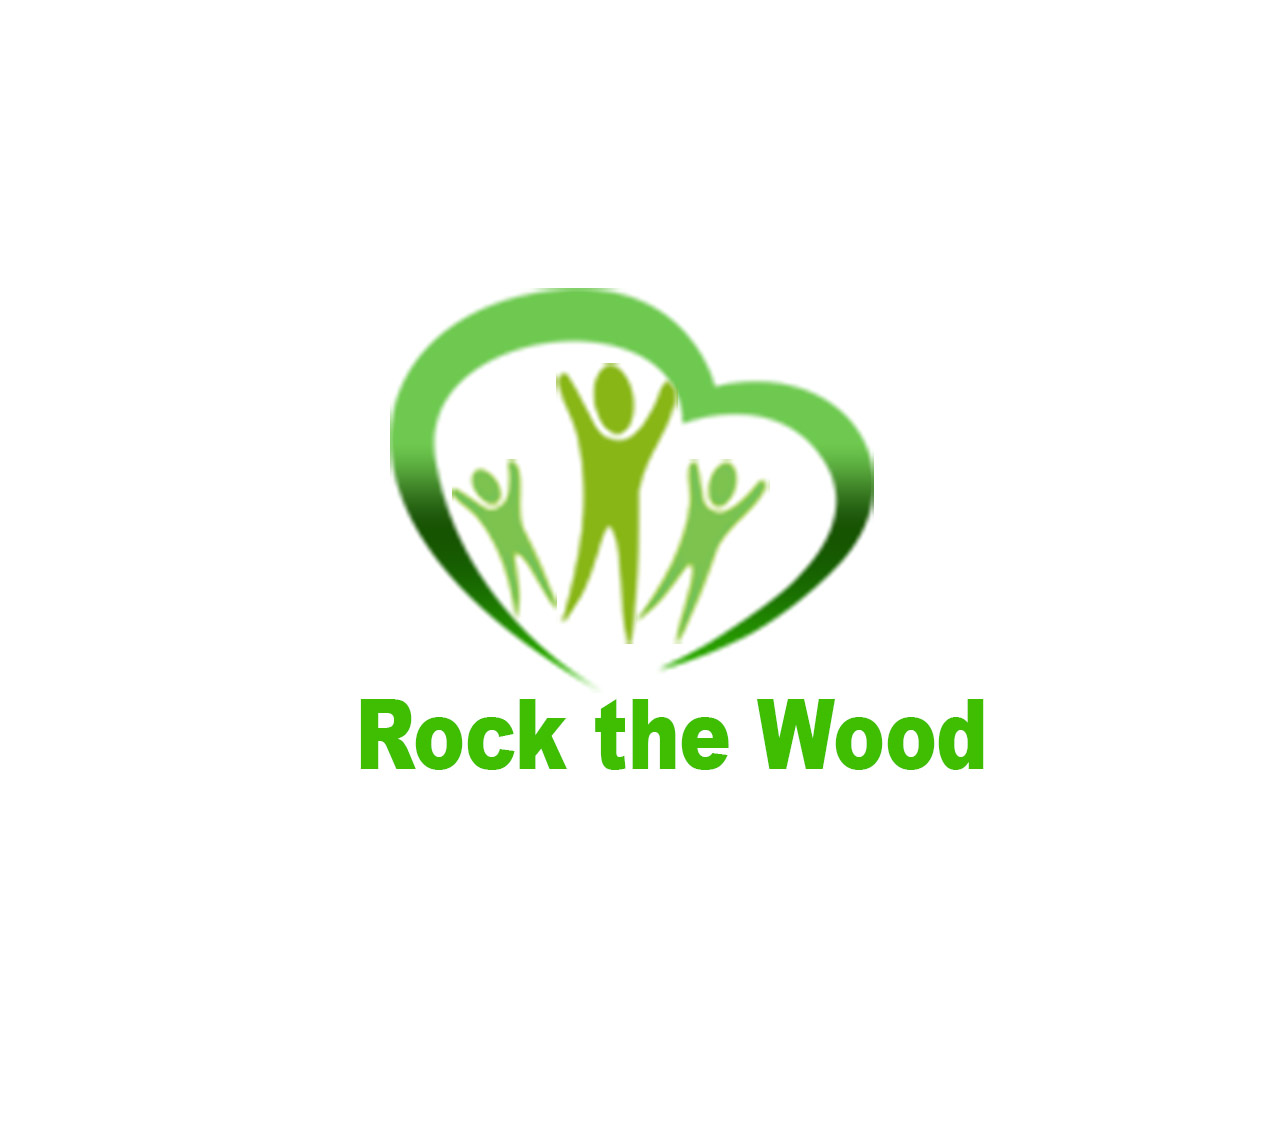 Logo Design by kjm22 - Entry No. 115 in the Logo Design Contest New Logo Design for Rock the Wood.